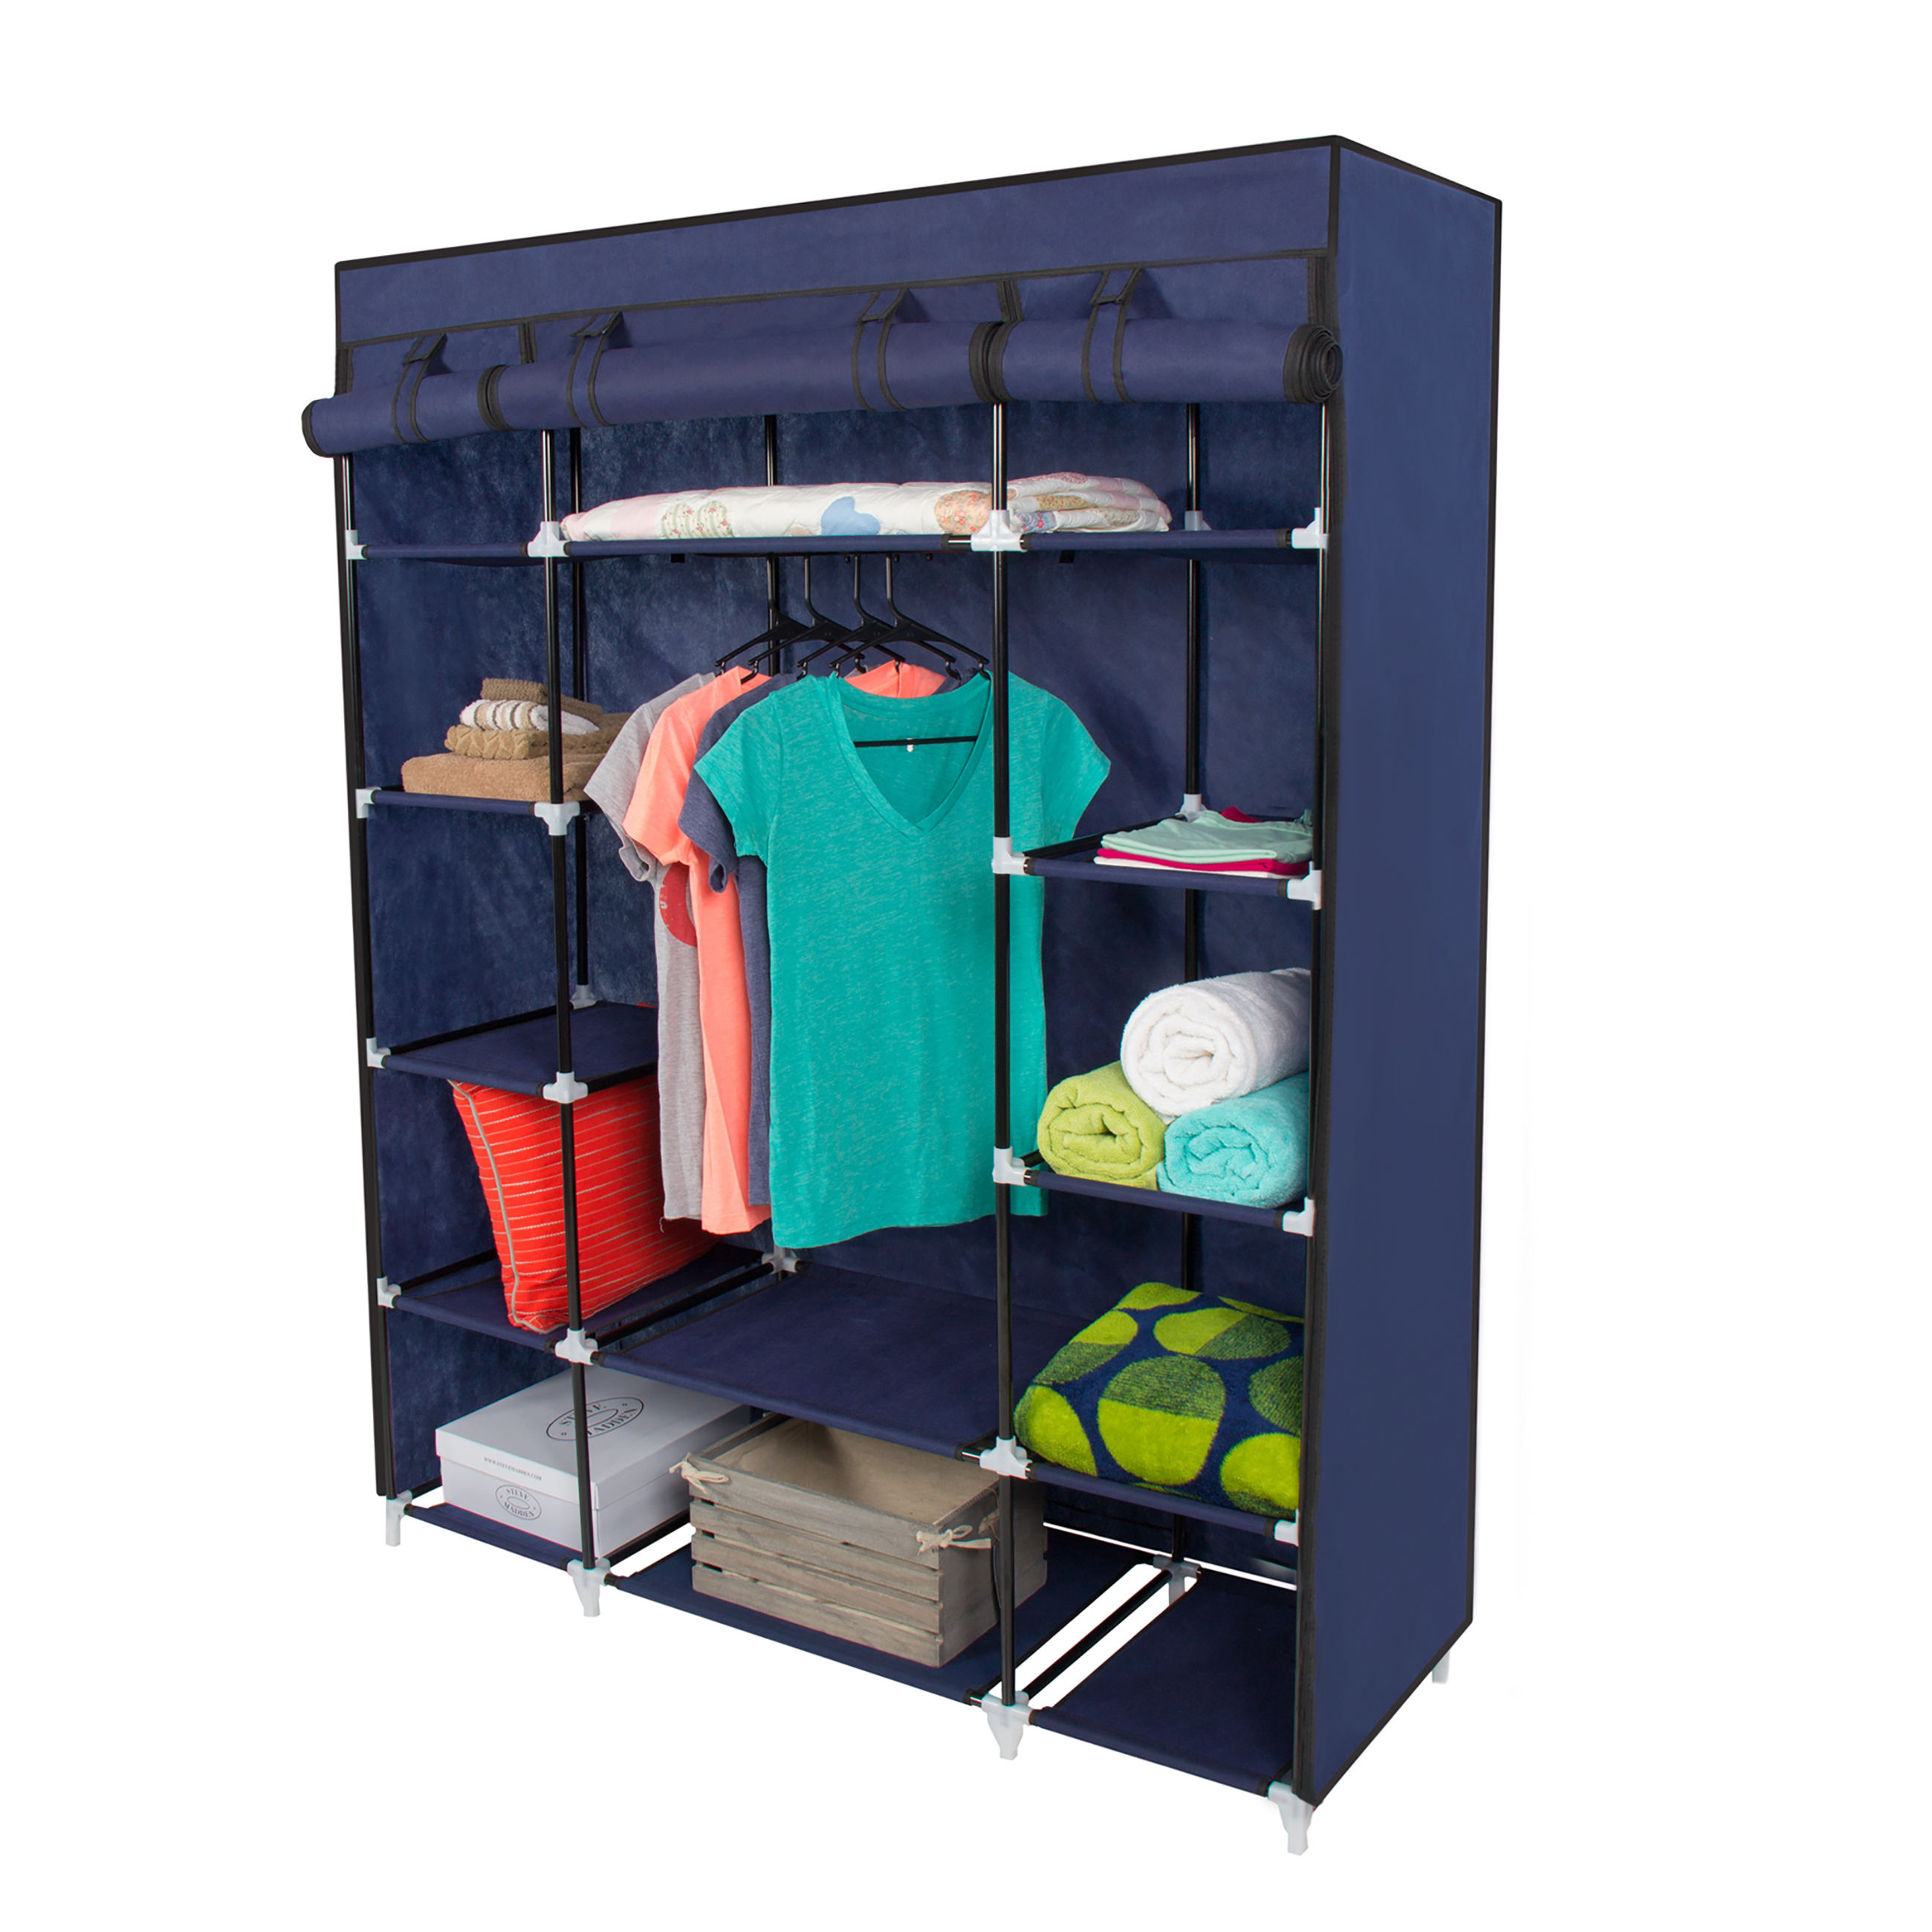 53u201d Portable Closet Storage Organizer Wardrobe Clothes Rack With Shelves  Blue